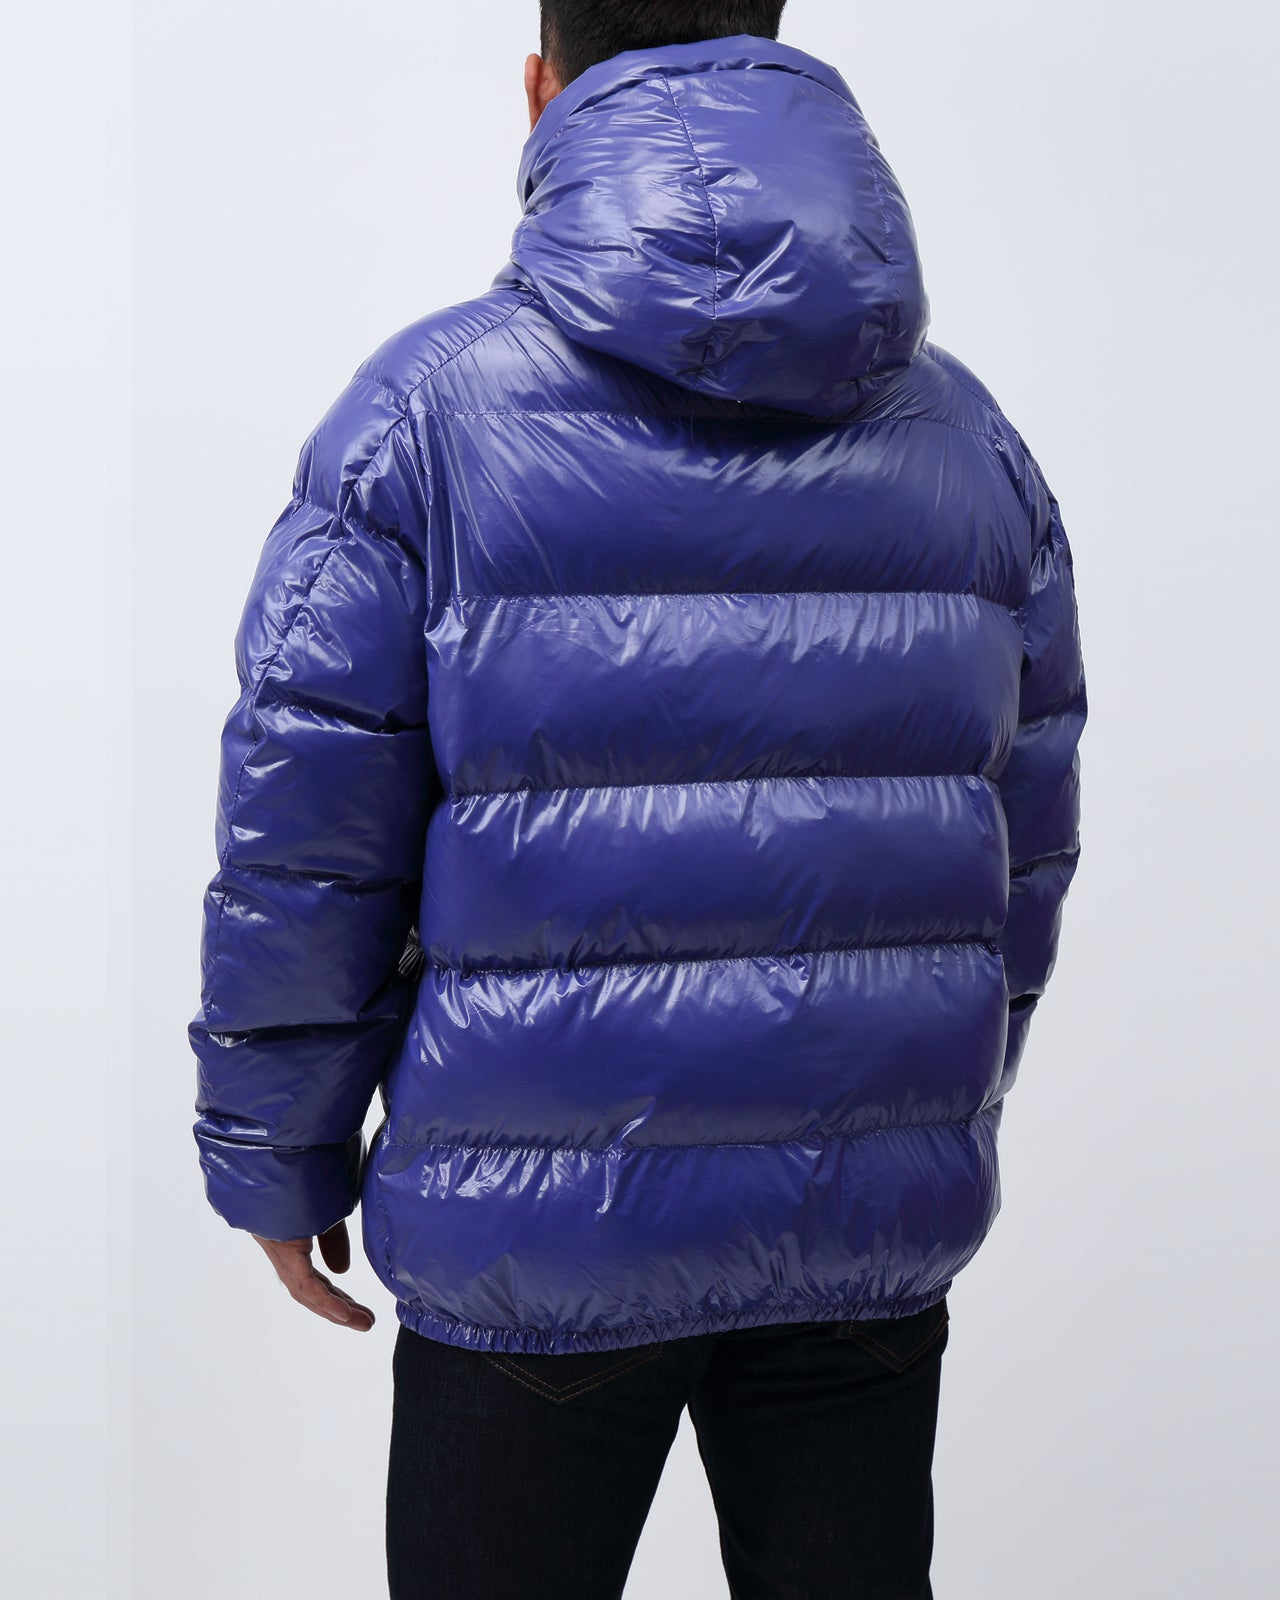 BP Full Zip Taped Placket Puffy Jacket - Color: Blue